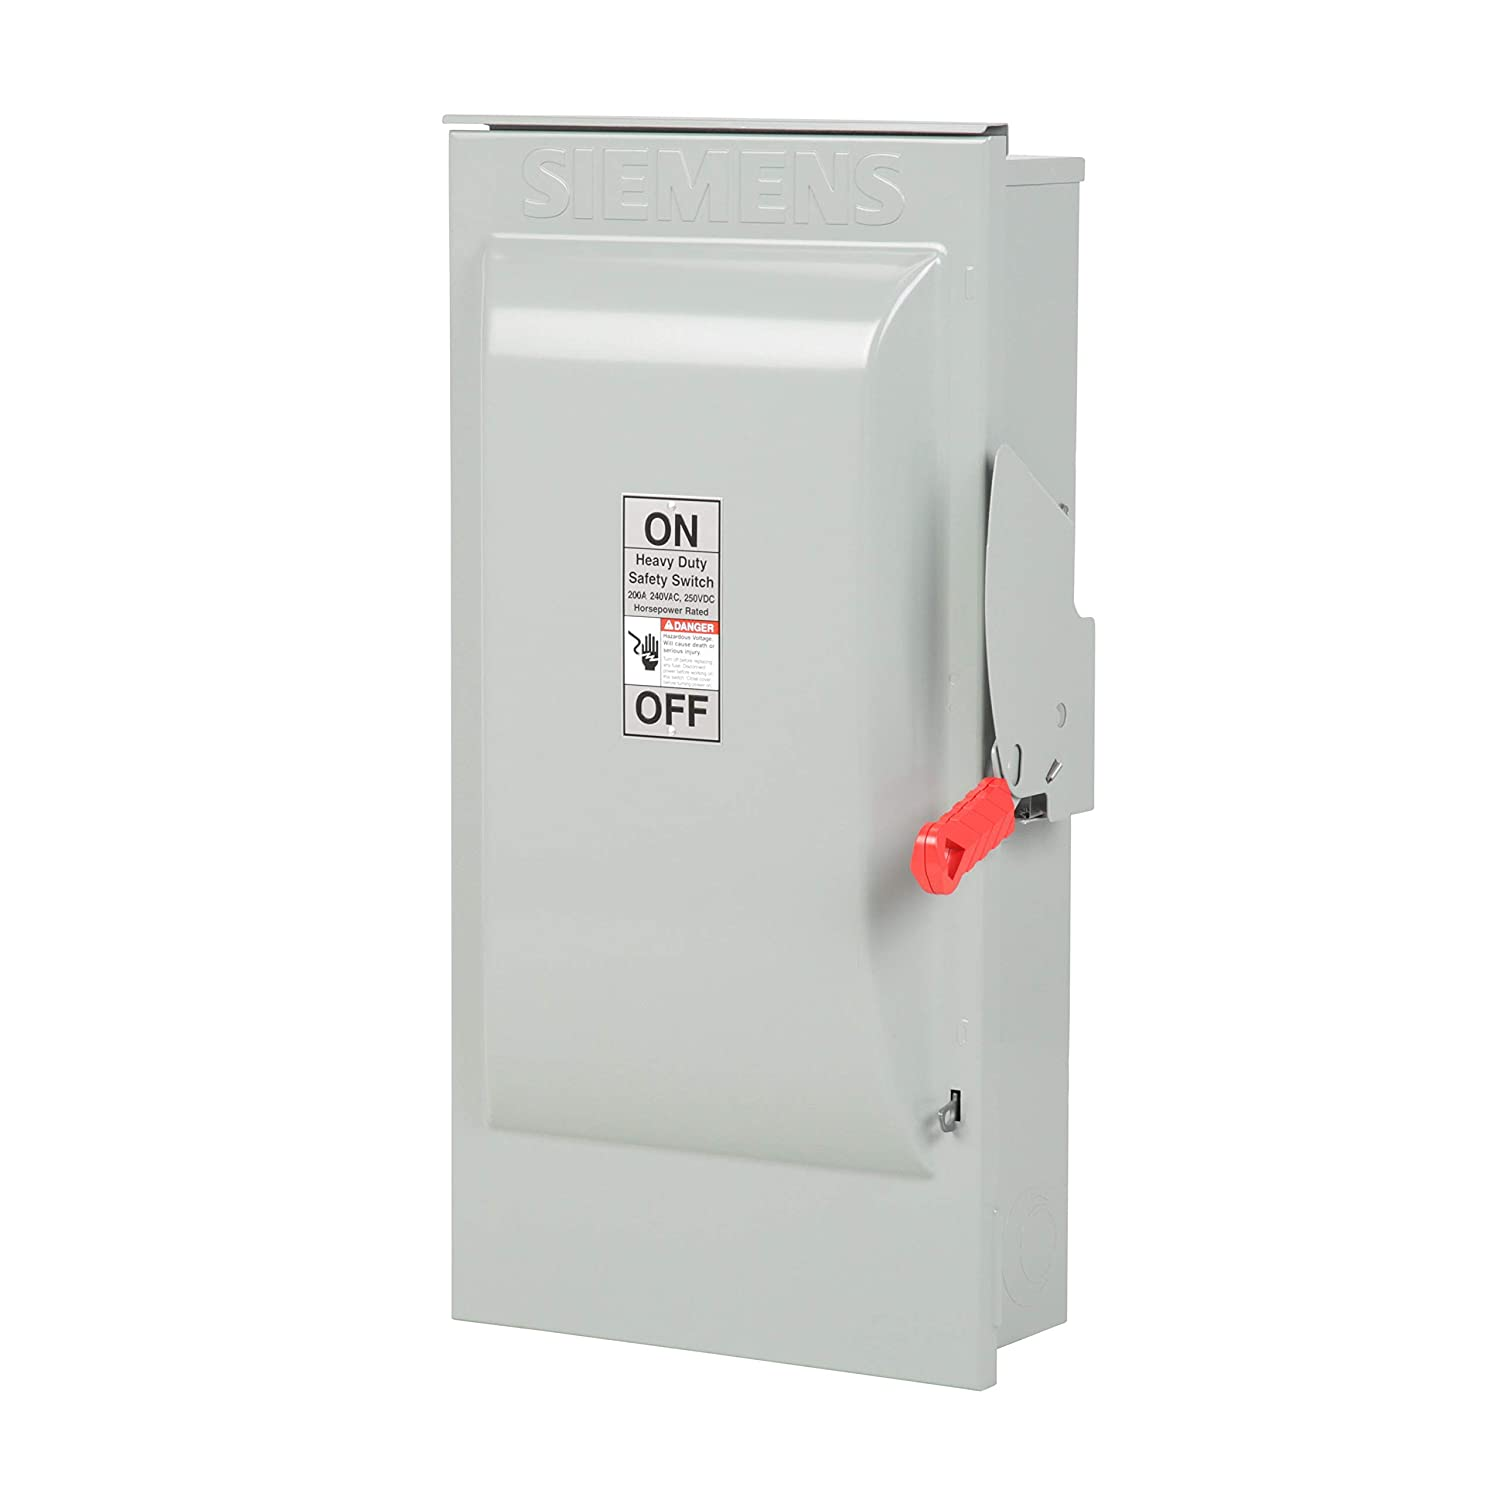 Siemens HF324NR 200-Amp 3 Pole 240-volt 4 Wire Fused Heavy Duty Safety Switches